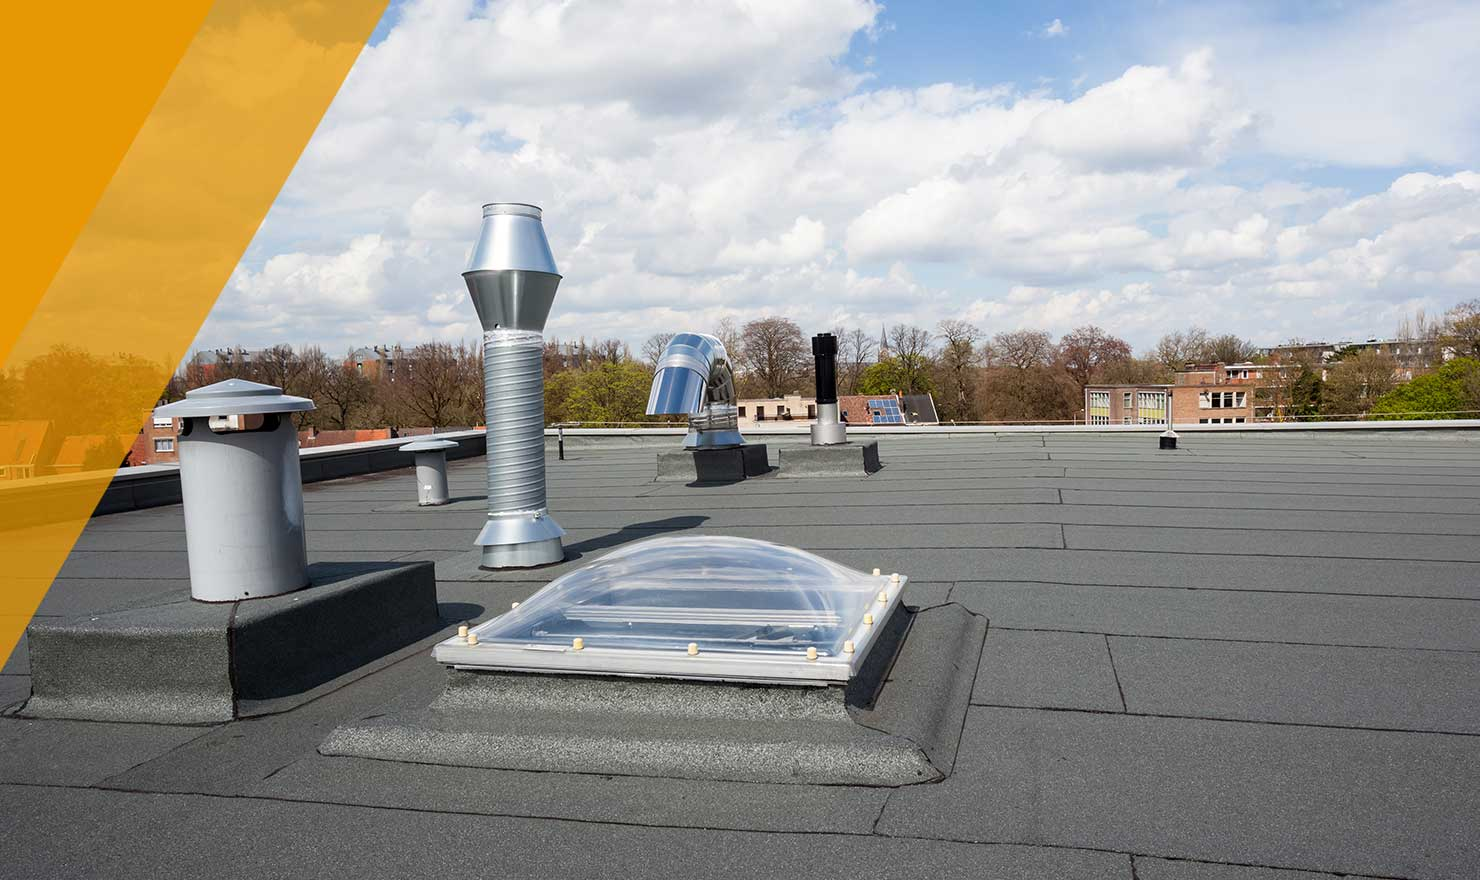 Image of a repaired flat commercial by MD roofing in edmonton